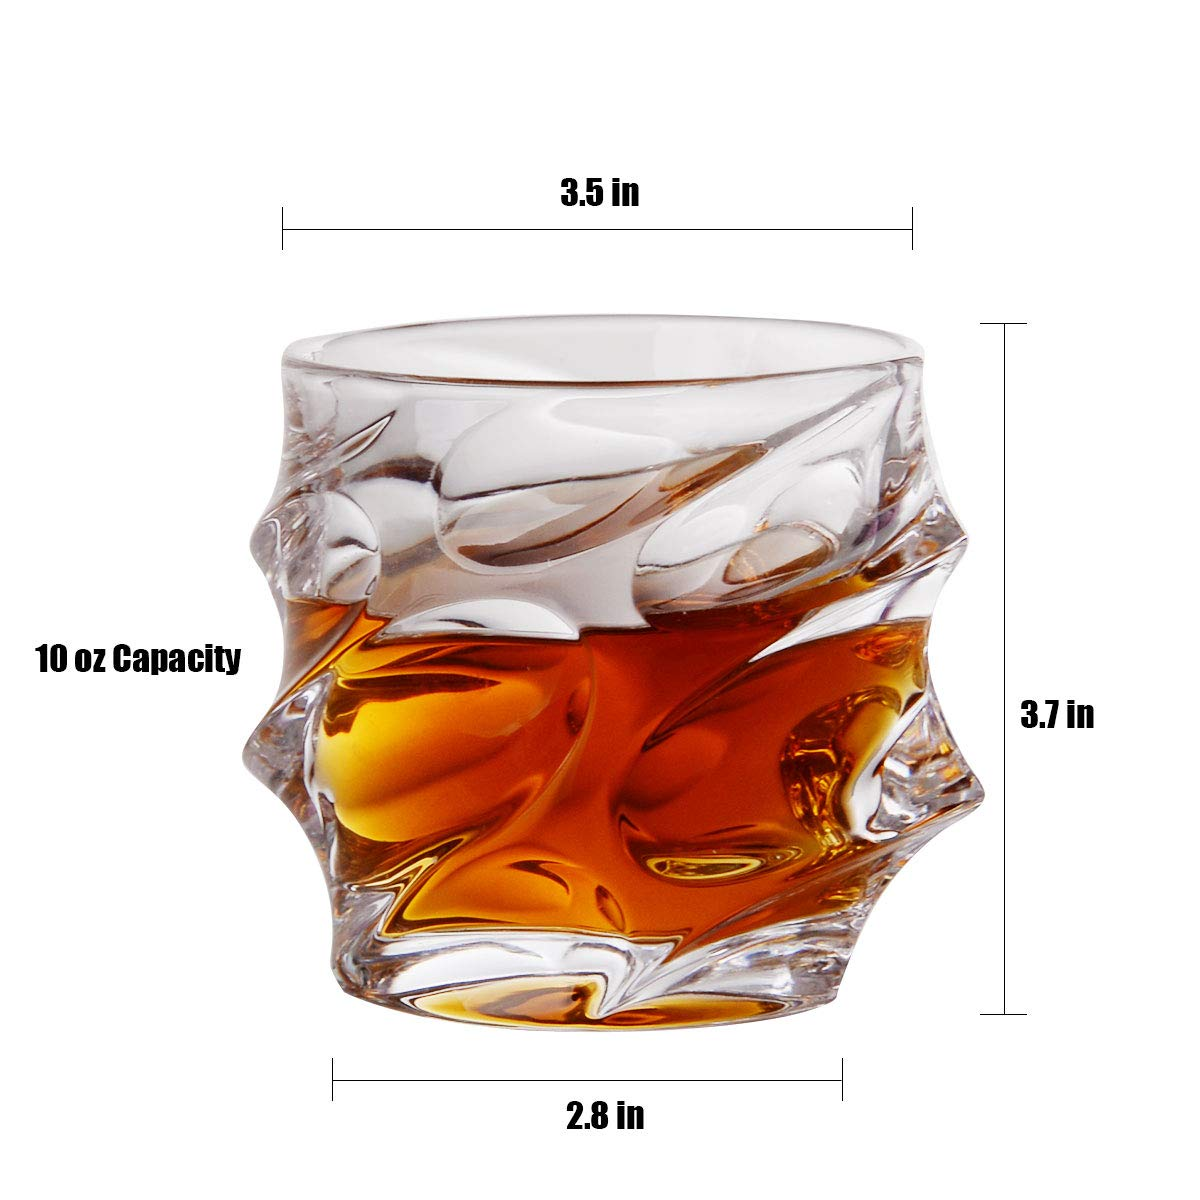 Whisky Glasses Set of 4 Drinking Glasses Shatterproof Crystal 10 Oz Glassware for Scotch, Whiskey,Tequila,Vodka,Brandy